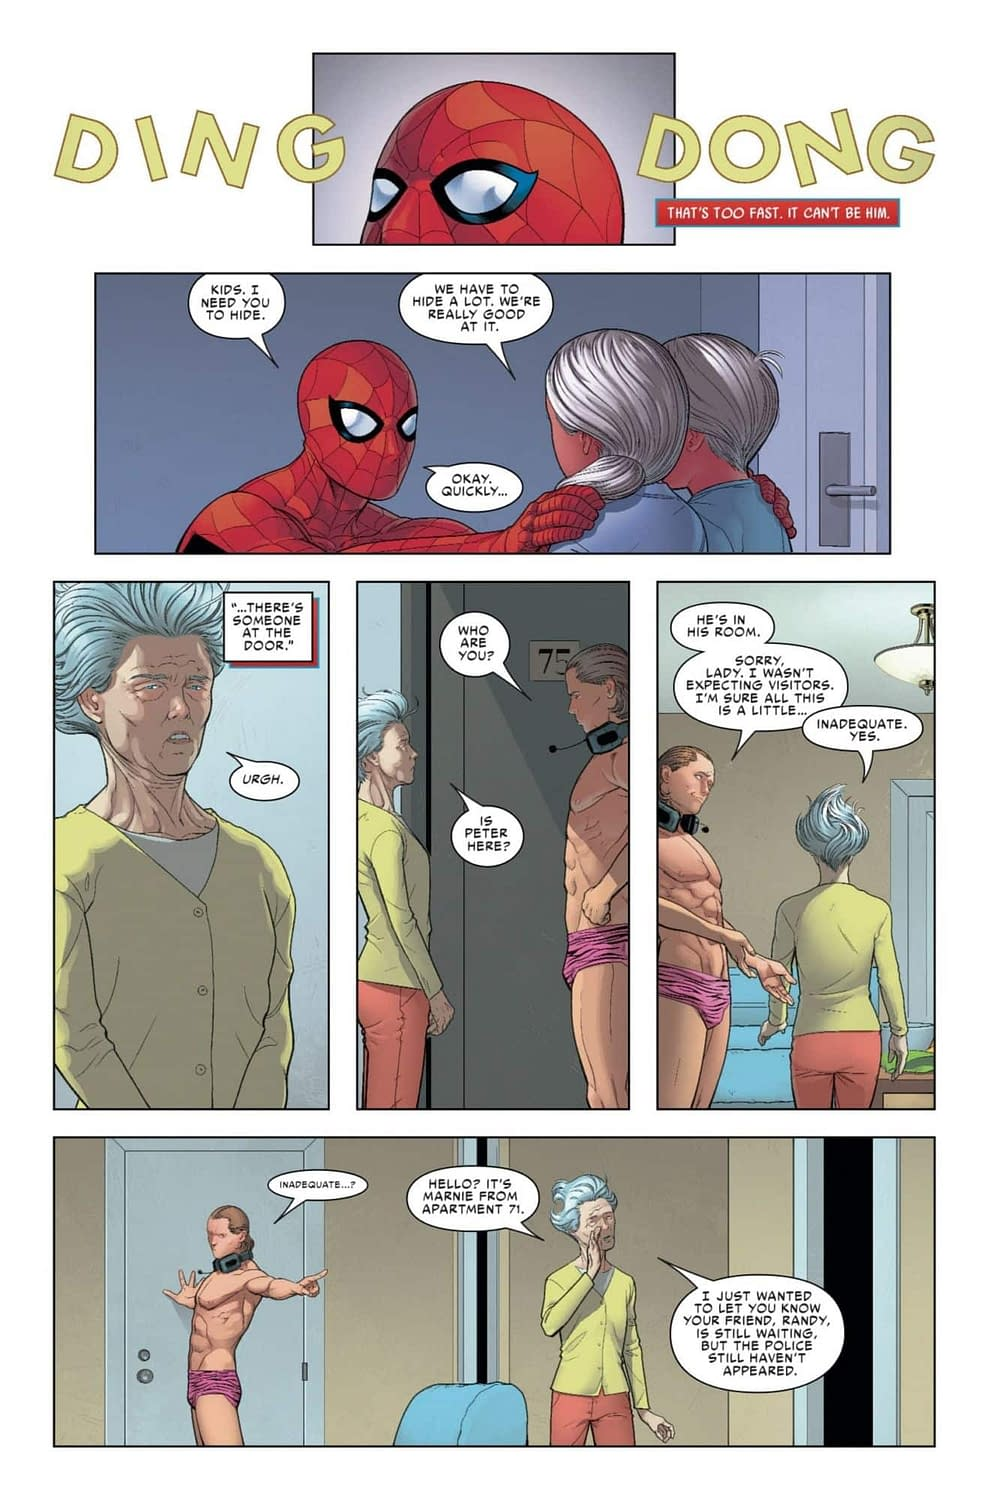 Judging Boomerang's Manhood in Next Week's Friendly Neighborhood Spider-Man #2